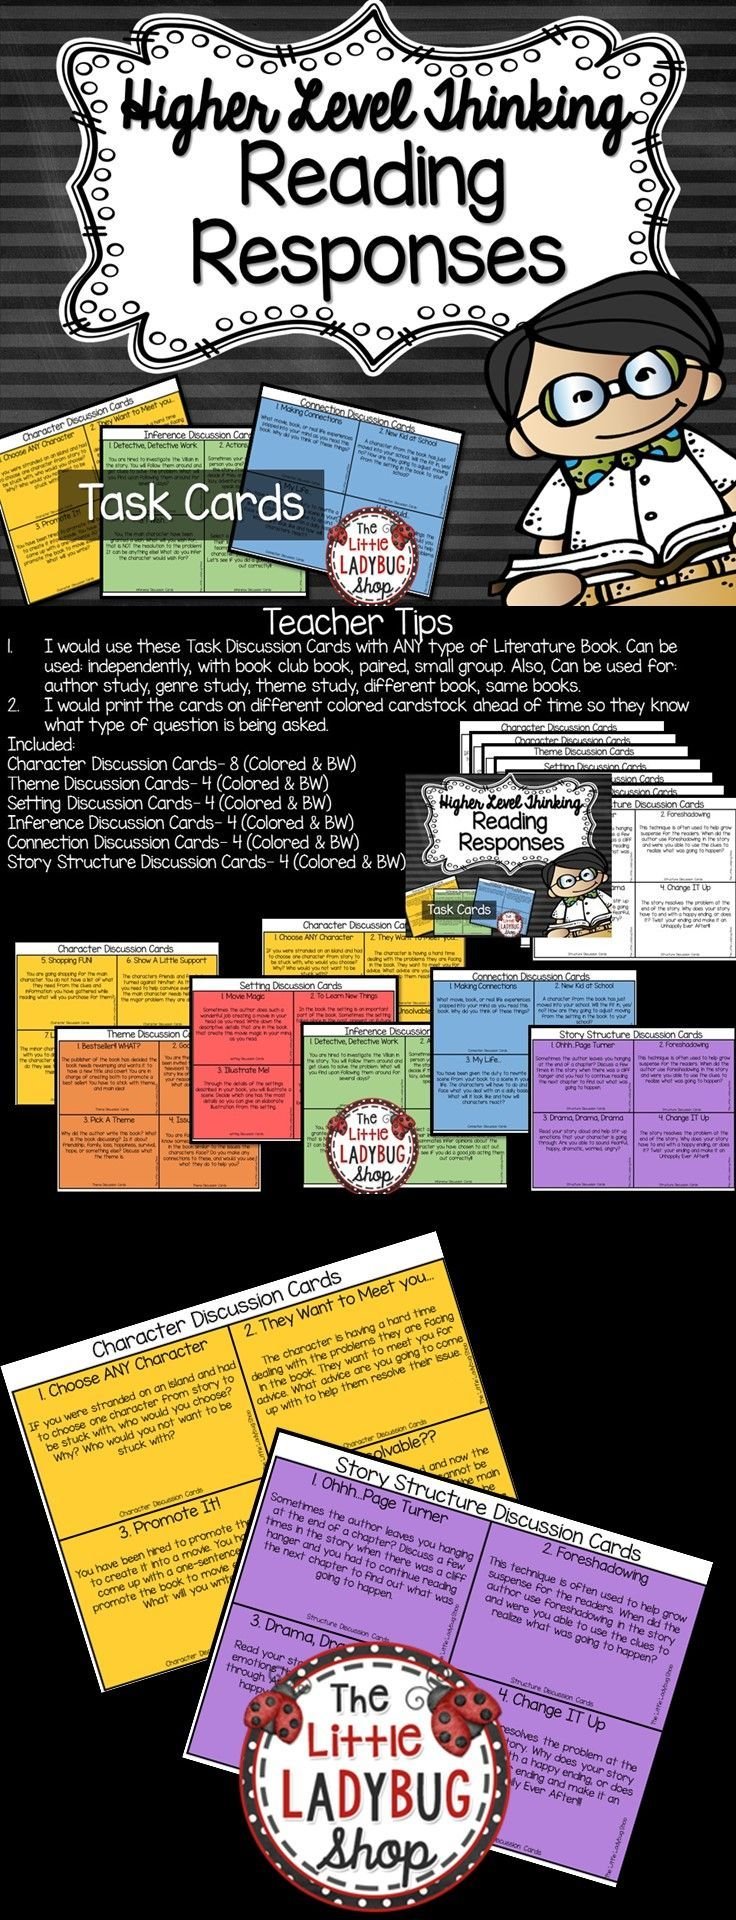 Reading Response | Reading Response | Reading Response  Reading Response Higher Level Thinking for ANY- book club, literature/ novel. Your students will LOVE these interactive and HOT task card activities!